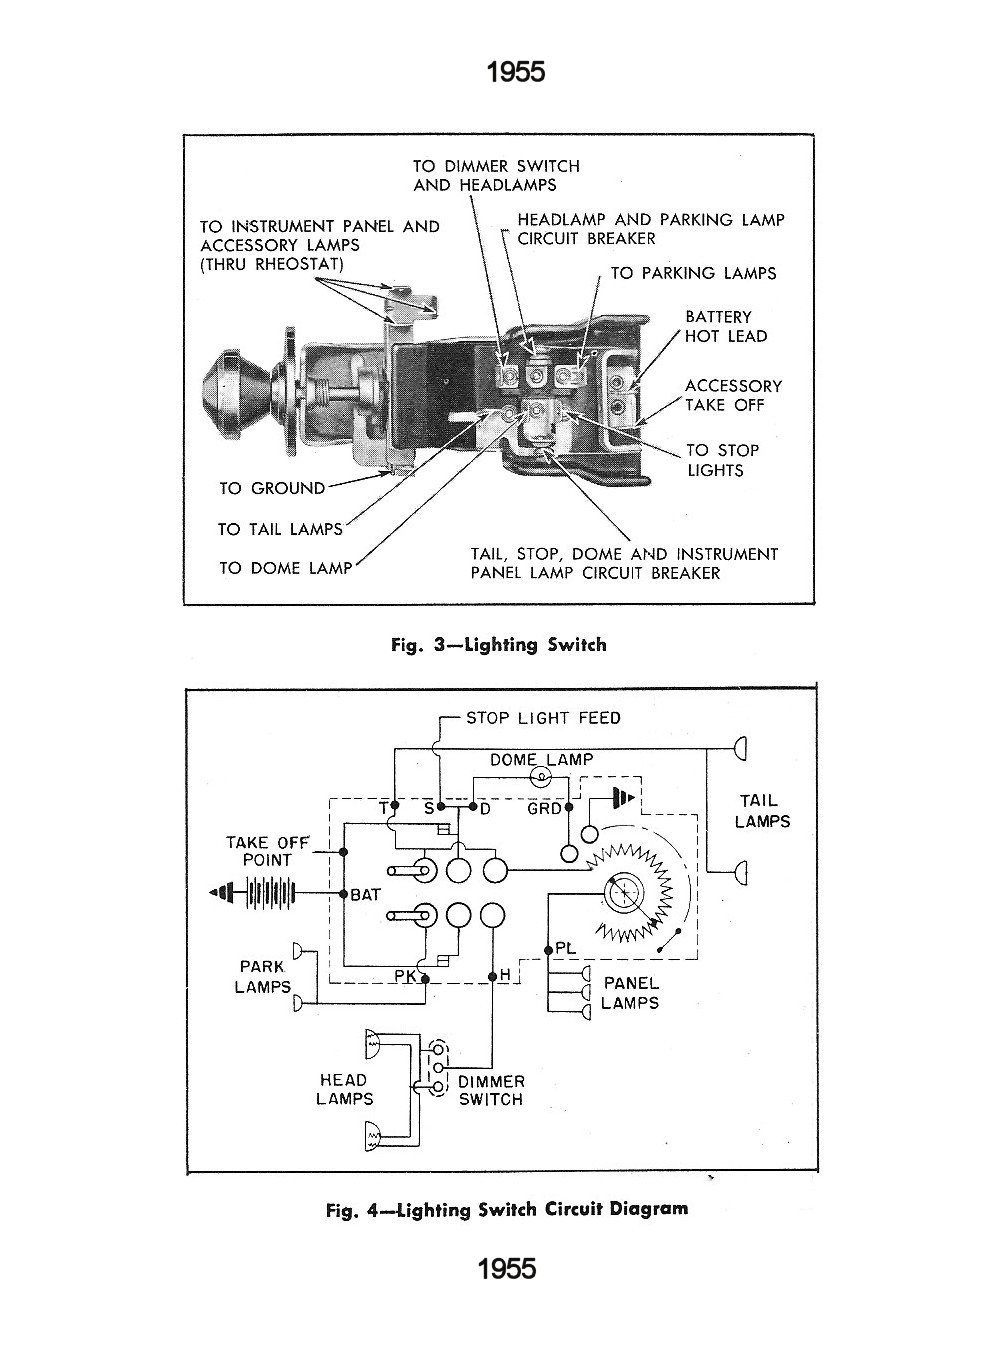 55csm1204a chevy wiring diagrams 66 Chevy Headlight Switch Wiring Diagram at soozxer.org